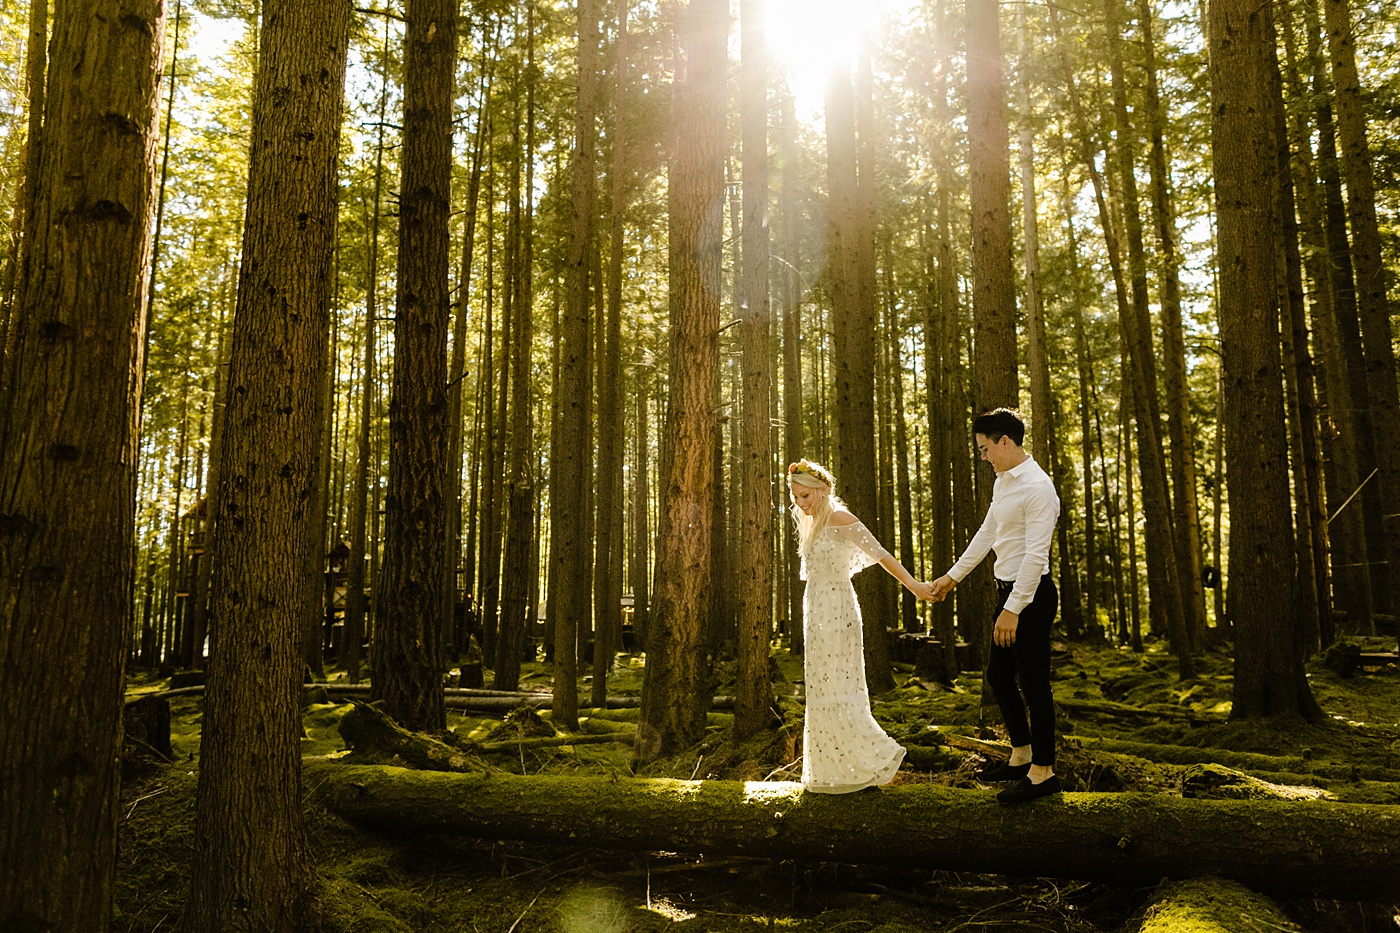 couple walking along a moss covered log in the forest, elopement location